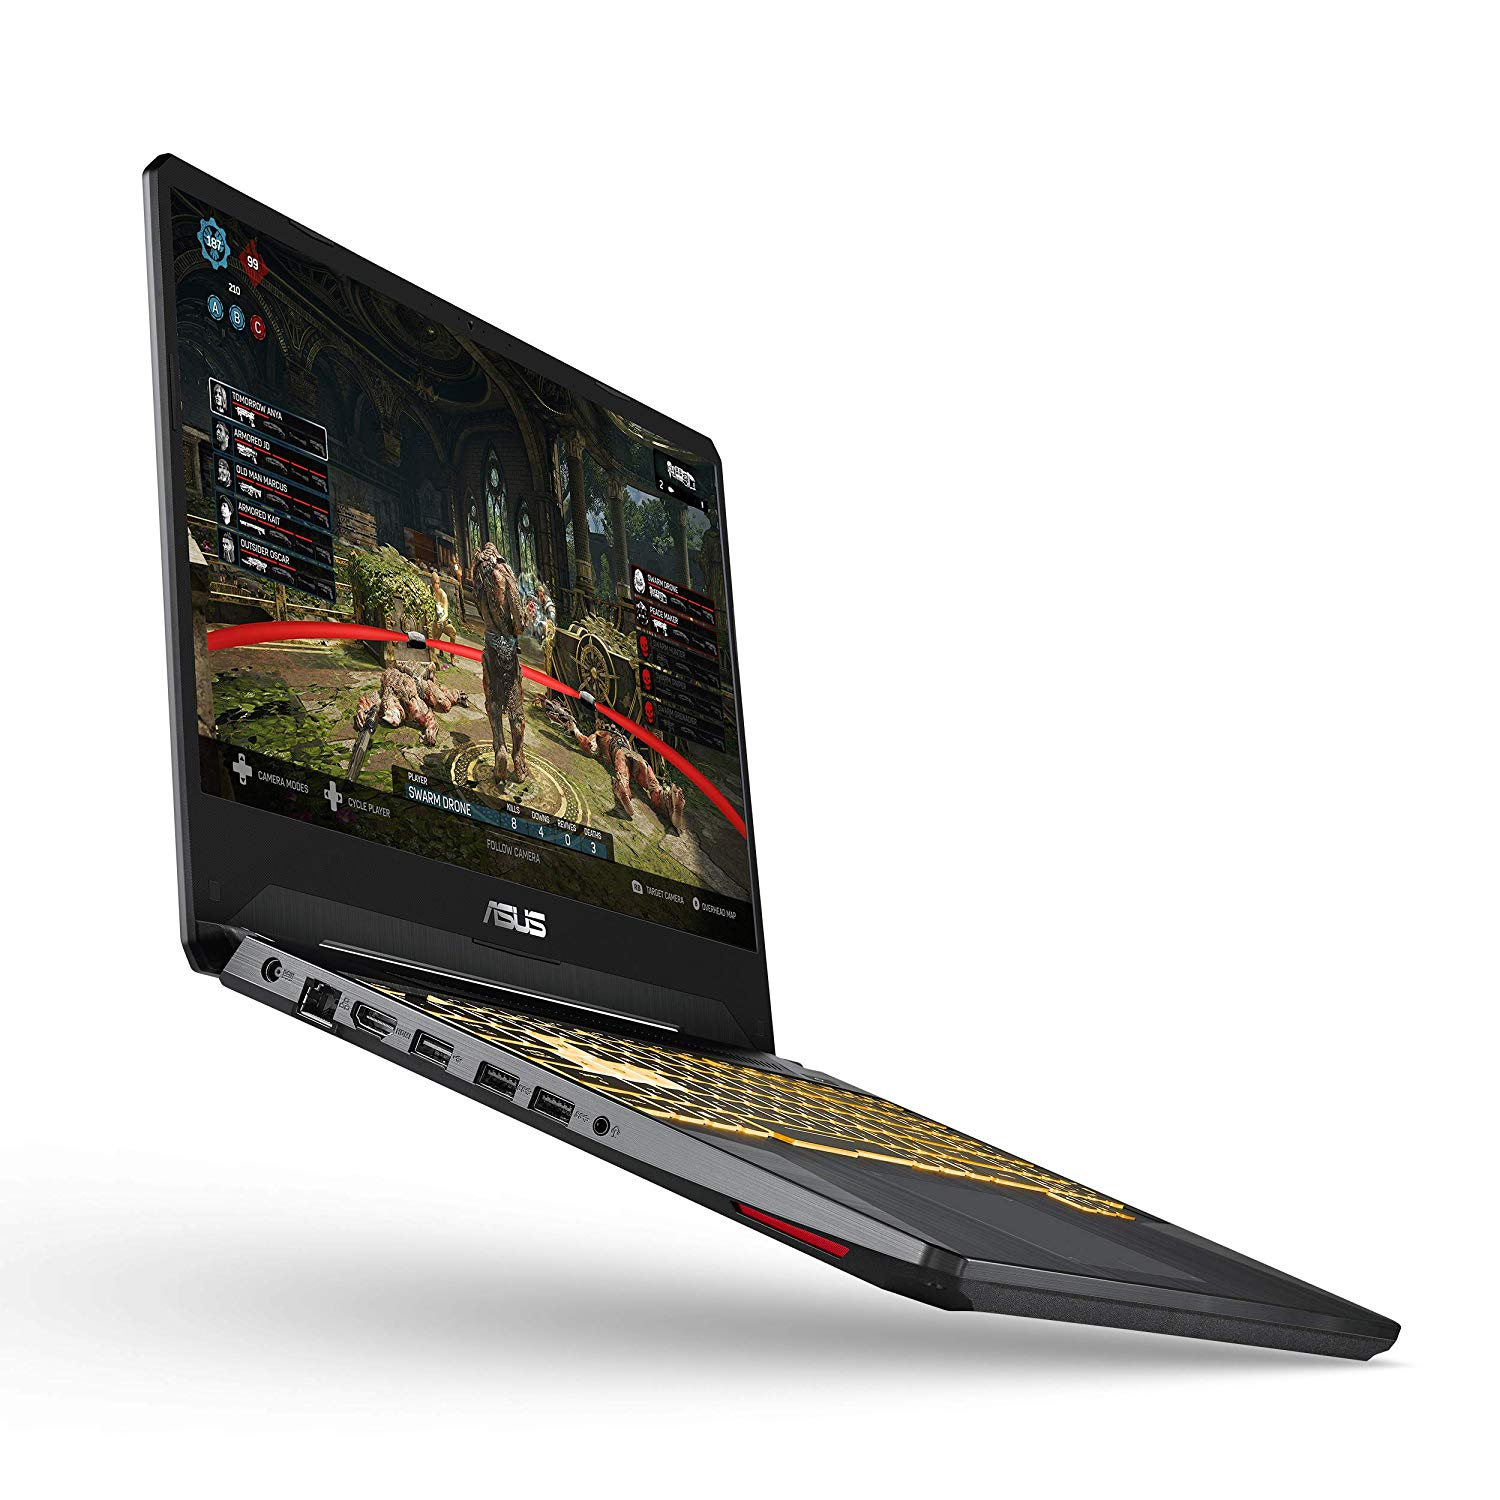 "ASUS TUF (2020) Gaming Laptop, 15.6"" 120Hz Full HD IPS-Type, AMD Ryzen 7 3750H, GeForce GTX 1660 Ti, 16GB DDR4, 256GB PCIe SSD + 1TB HDD, Gigabit WiFi 5, Windows 10 Home, TUF505DU-EB74 (Renewed) Product Code: B07SR5HS6X"